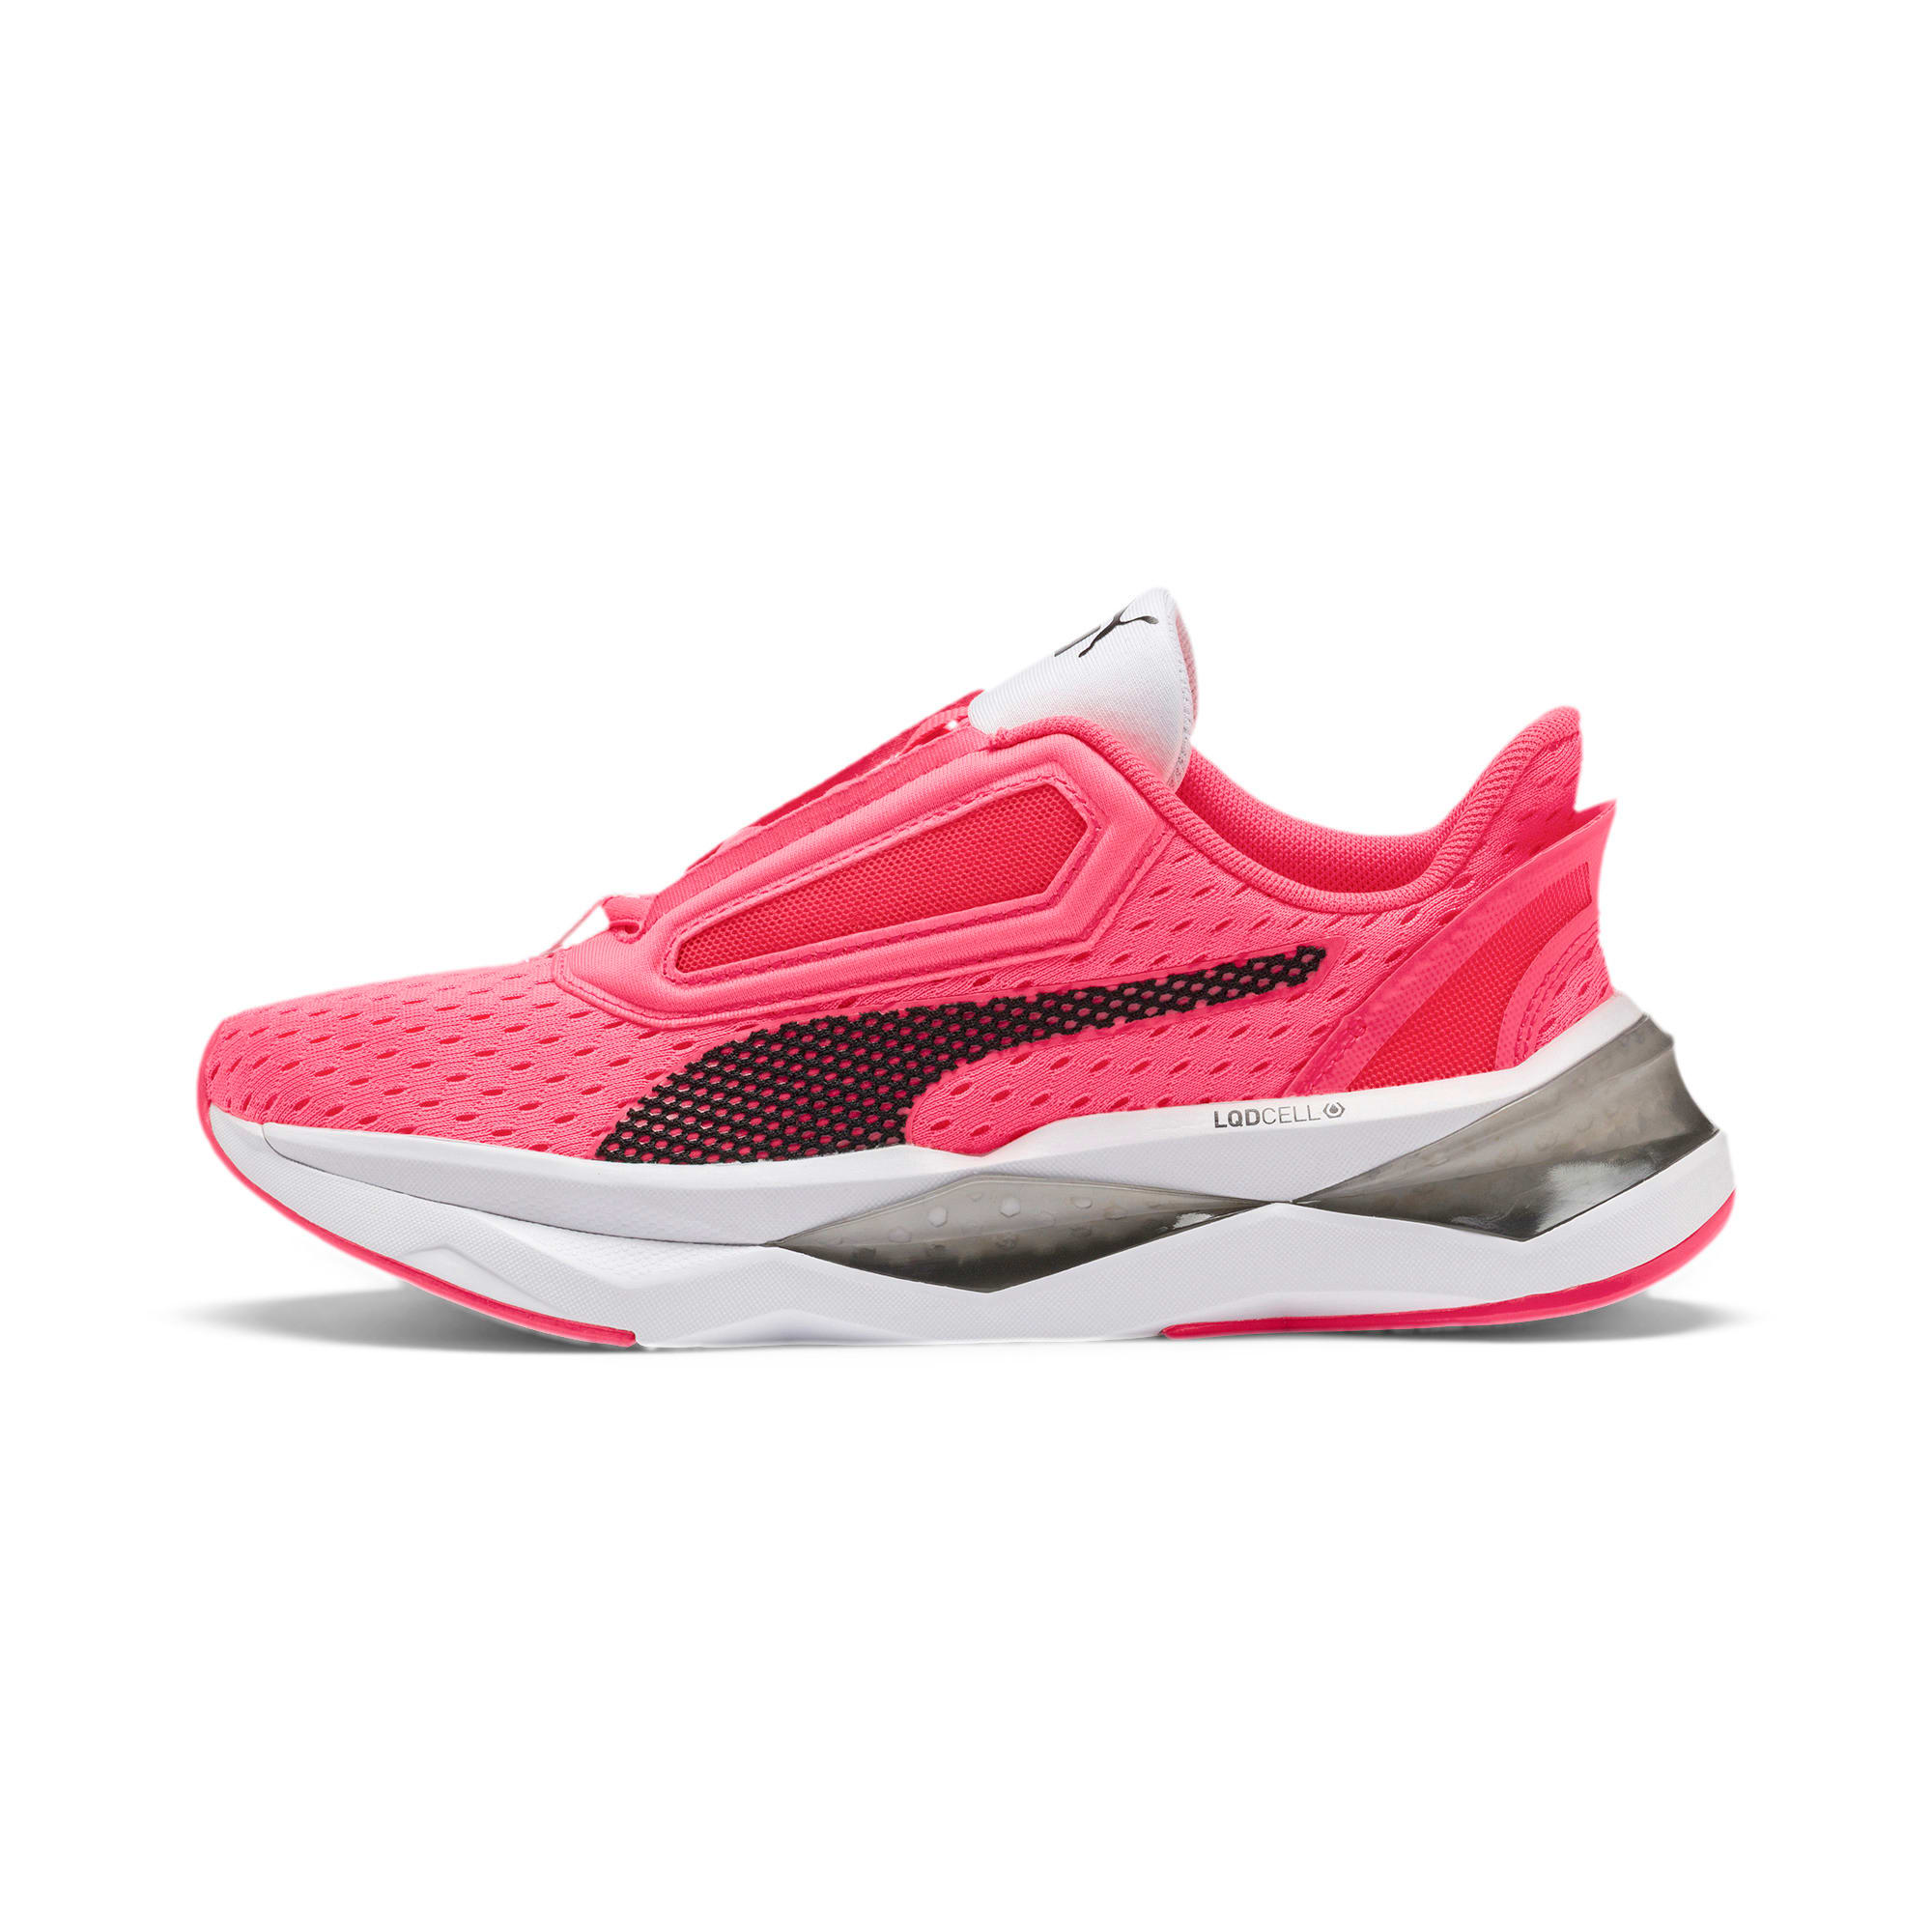 Thumbnail 1 of LQDCELL Shatter XT Women's Training Shoes, Pink Alert-Puma White, medium